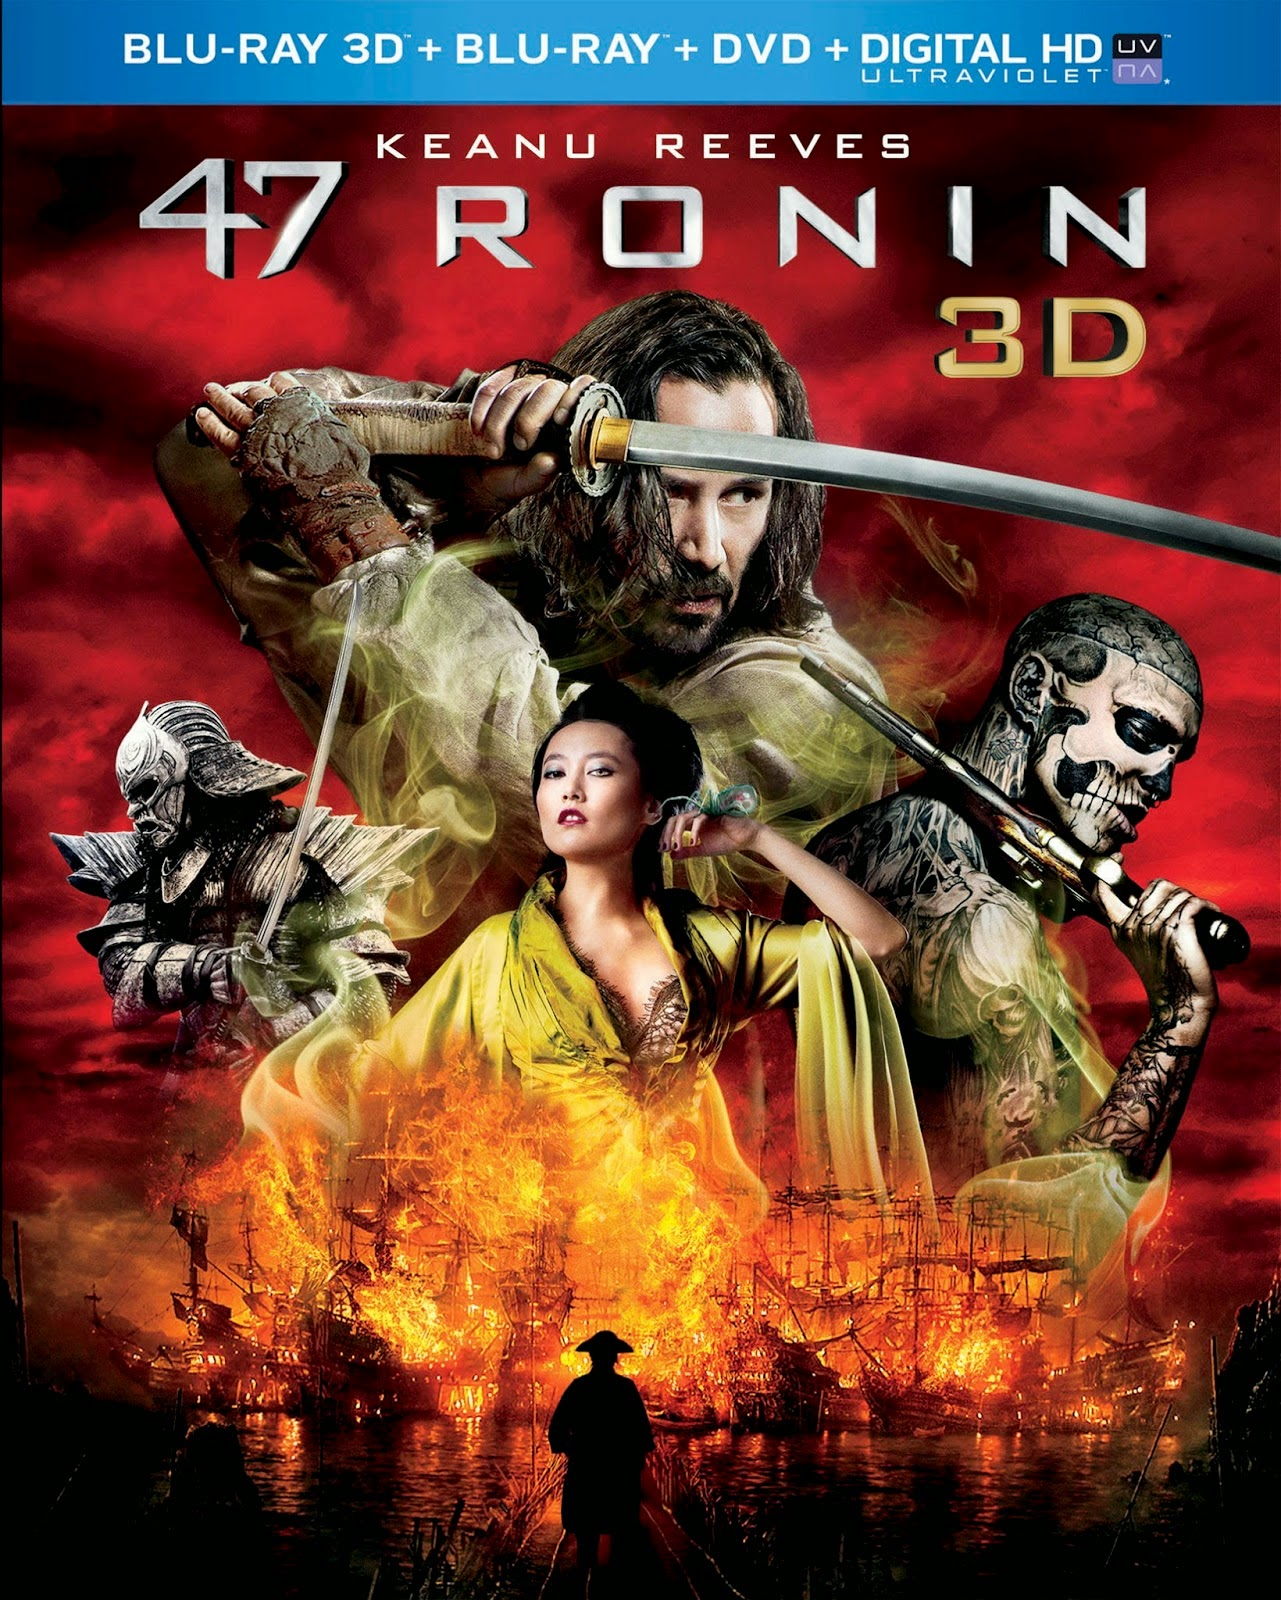 WIN a 47 Ronin movie via iTunes code!